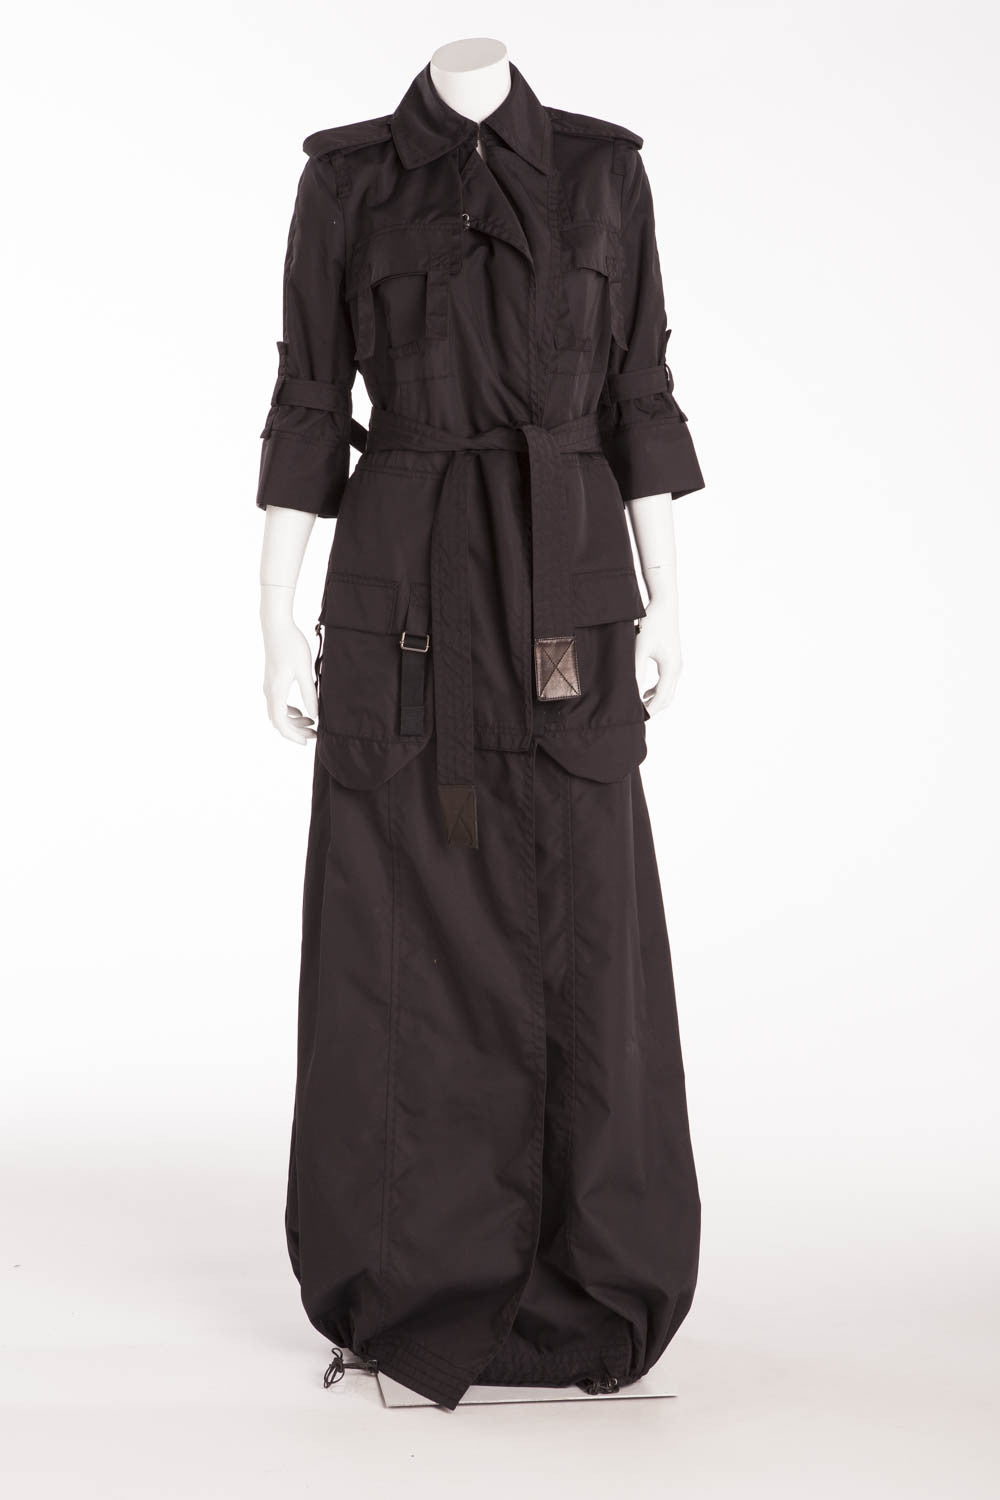 Kaufman Franco - Black Long Trench Coat - IT 44